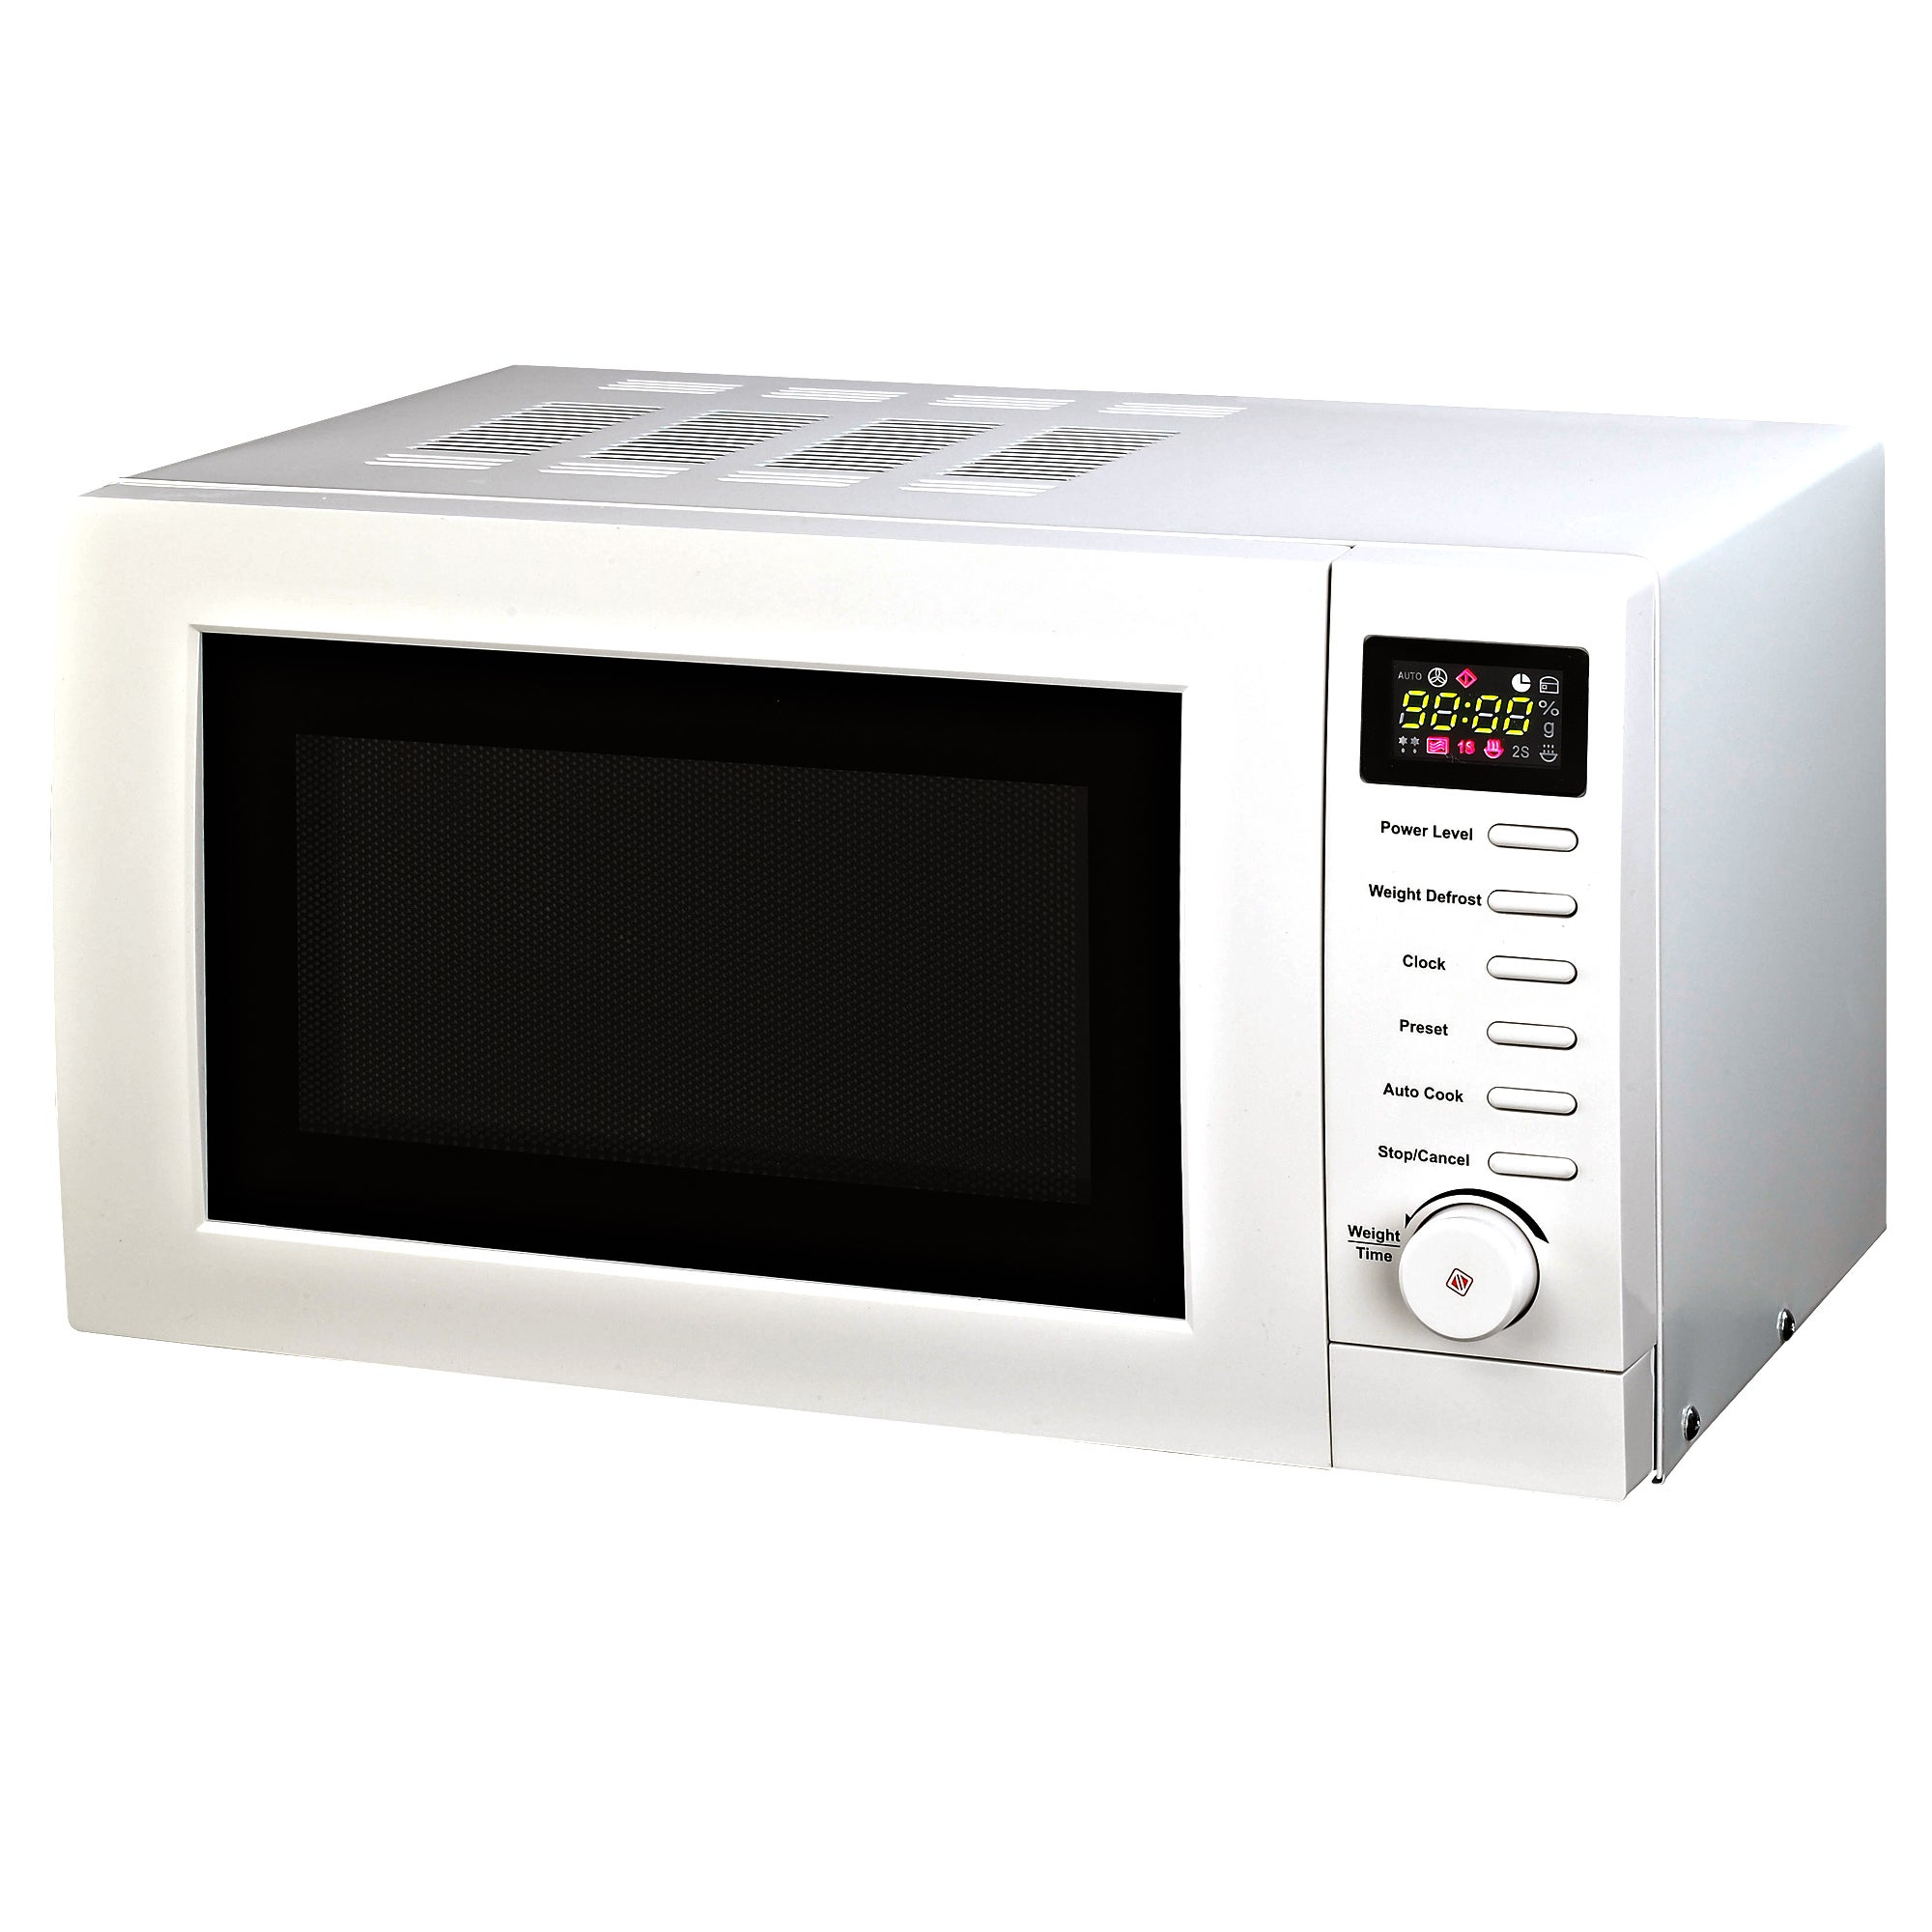 White Digital Microwave